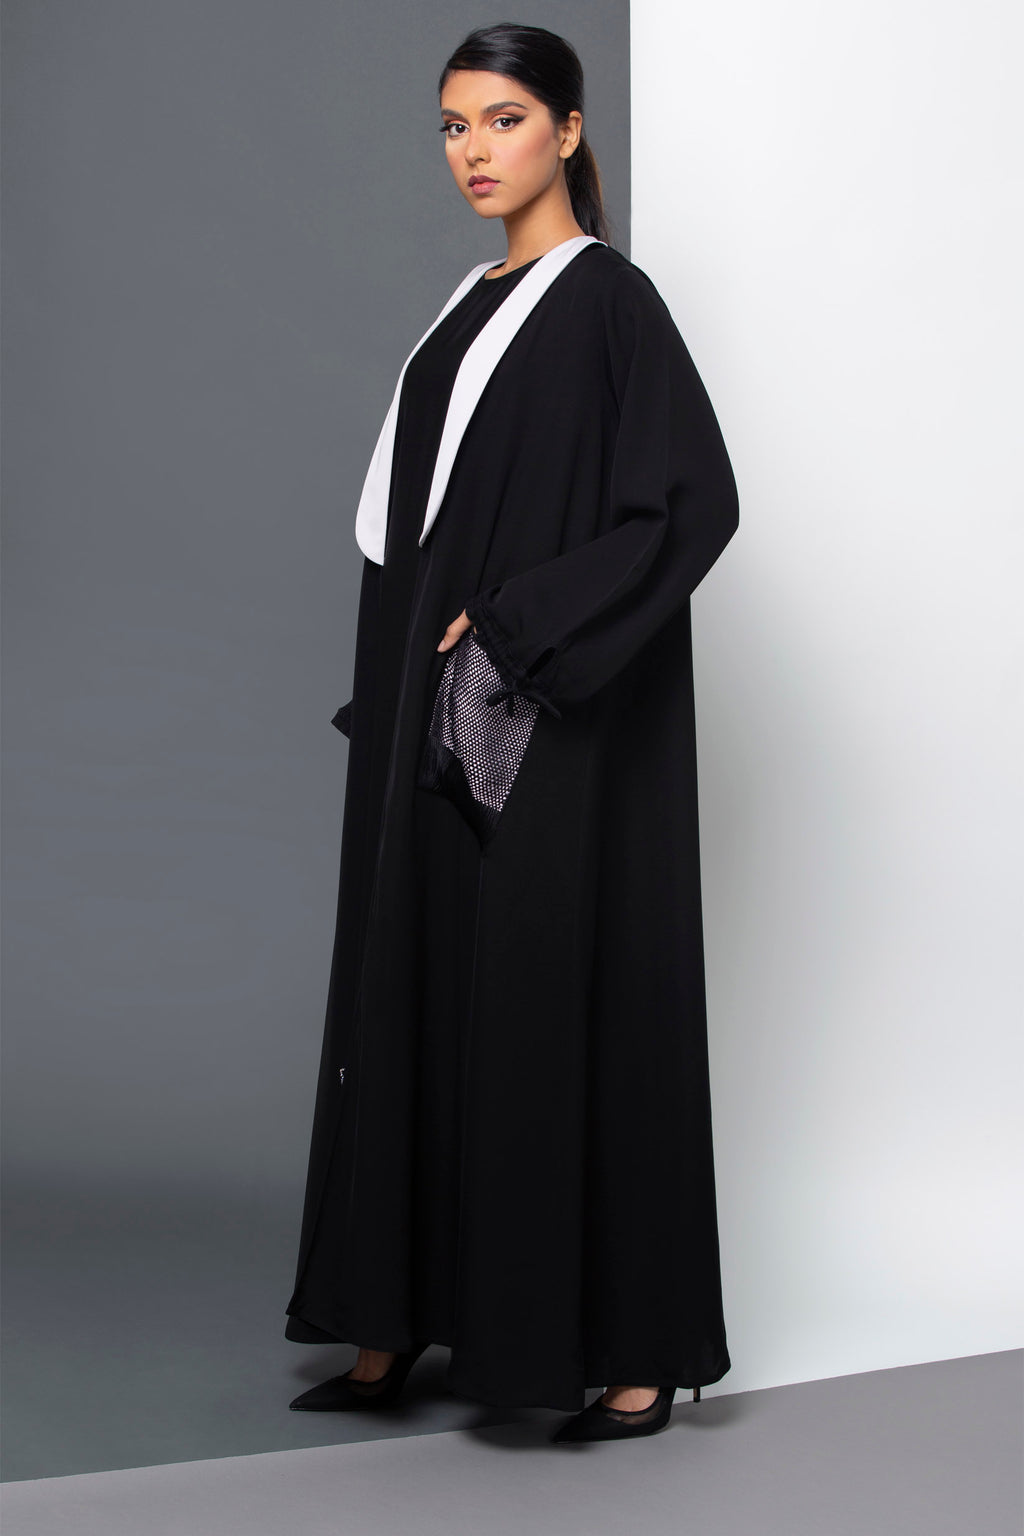 BLACK COLLAR MESH POCKET OPEN ABAYA.